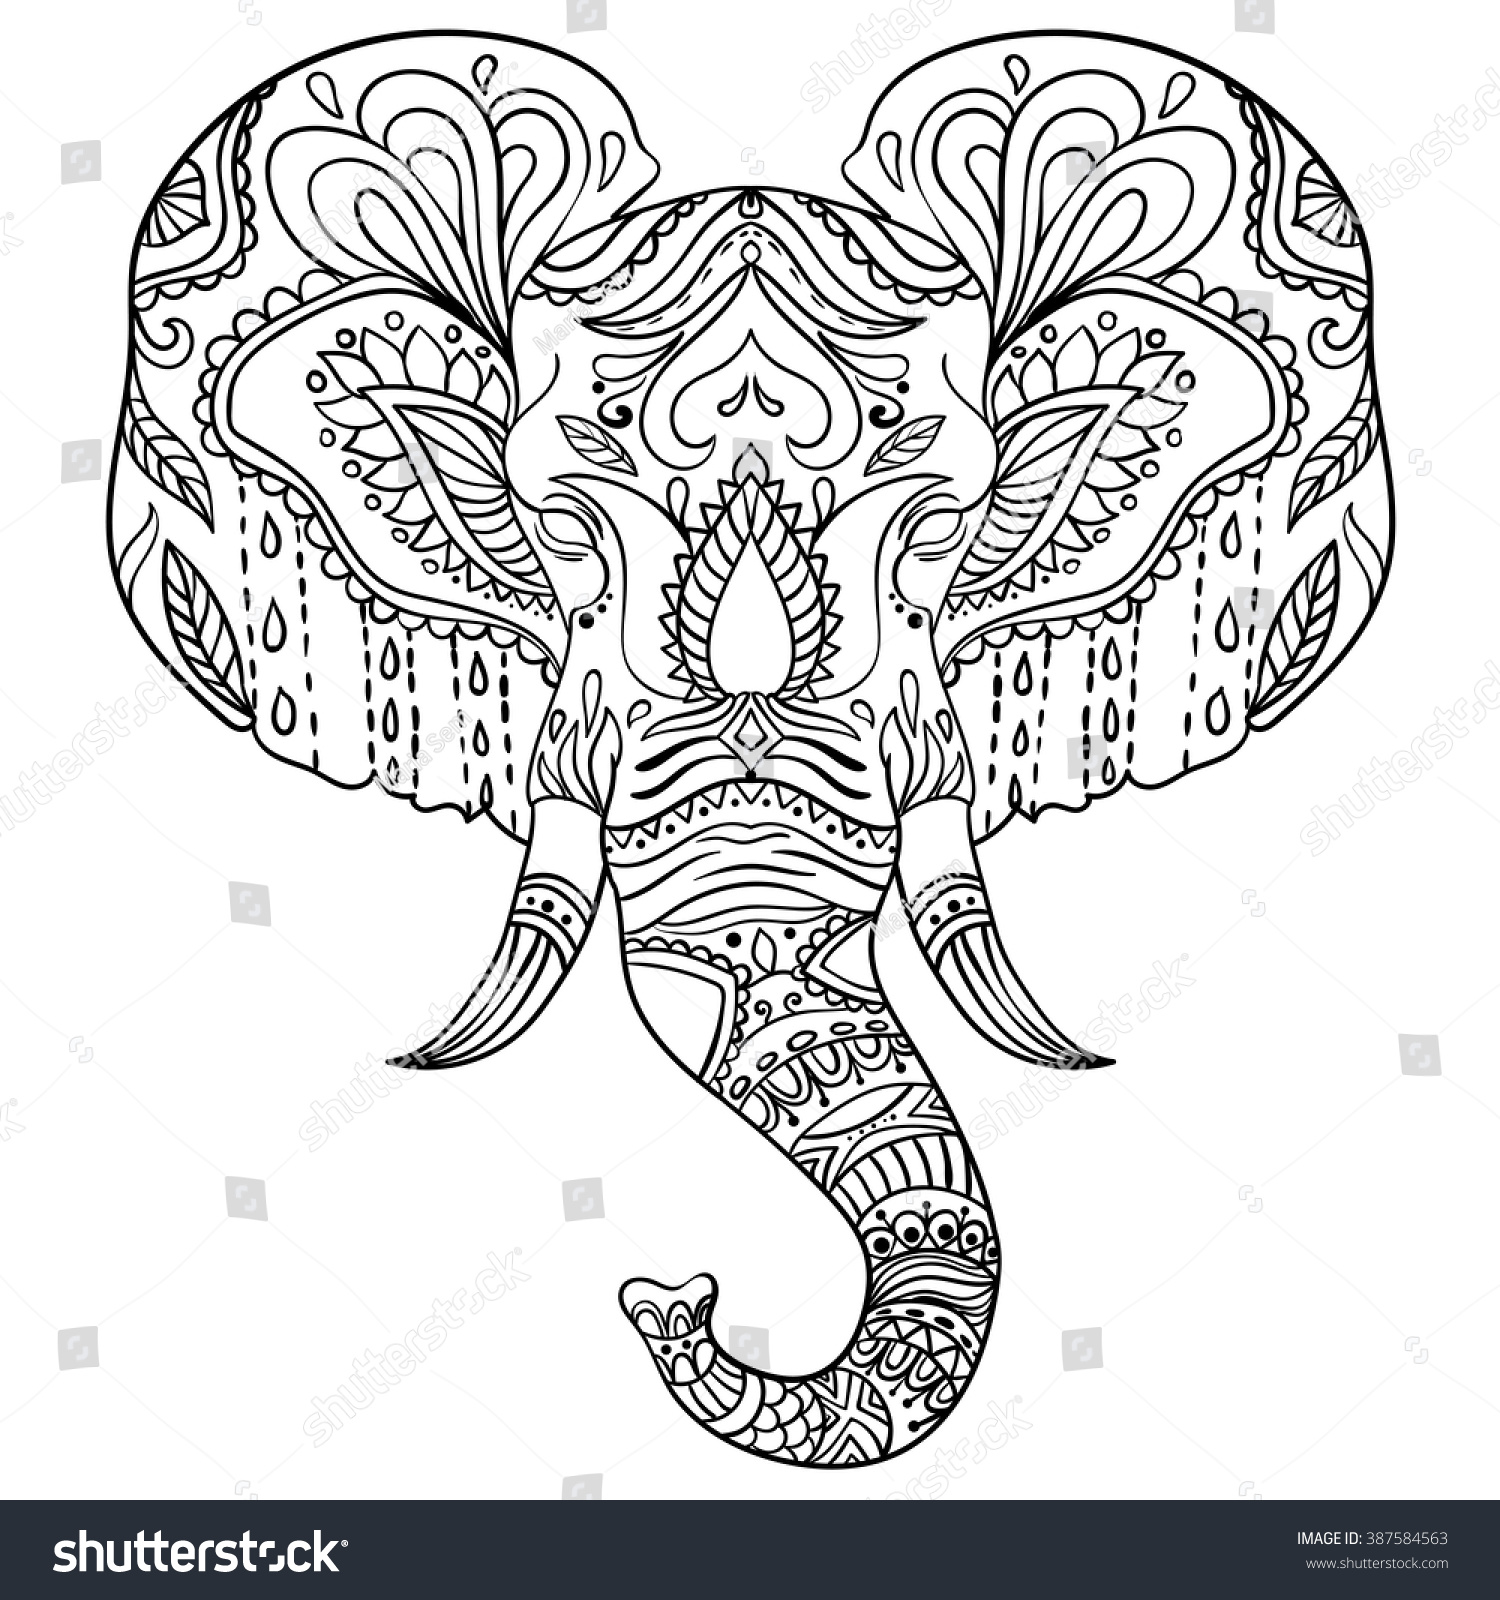 Abstract Elephant Ornate Isolated Vector Illustration ...